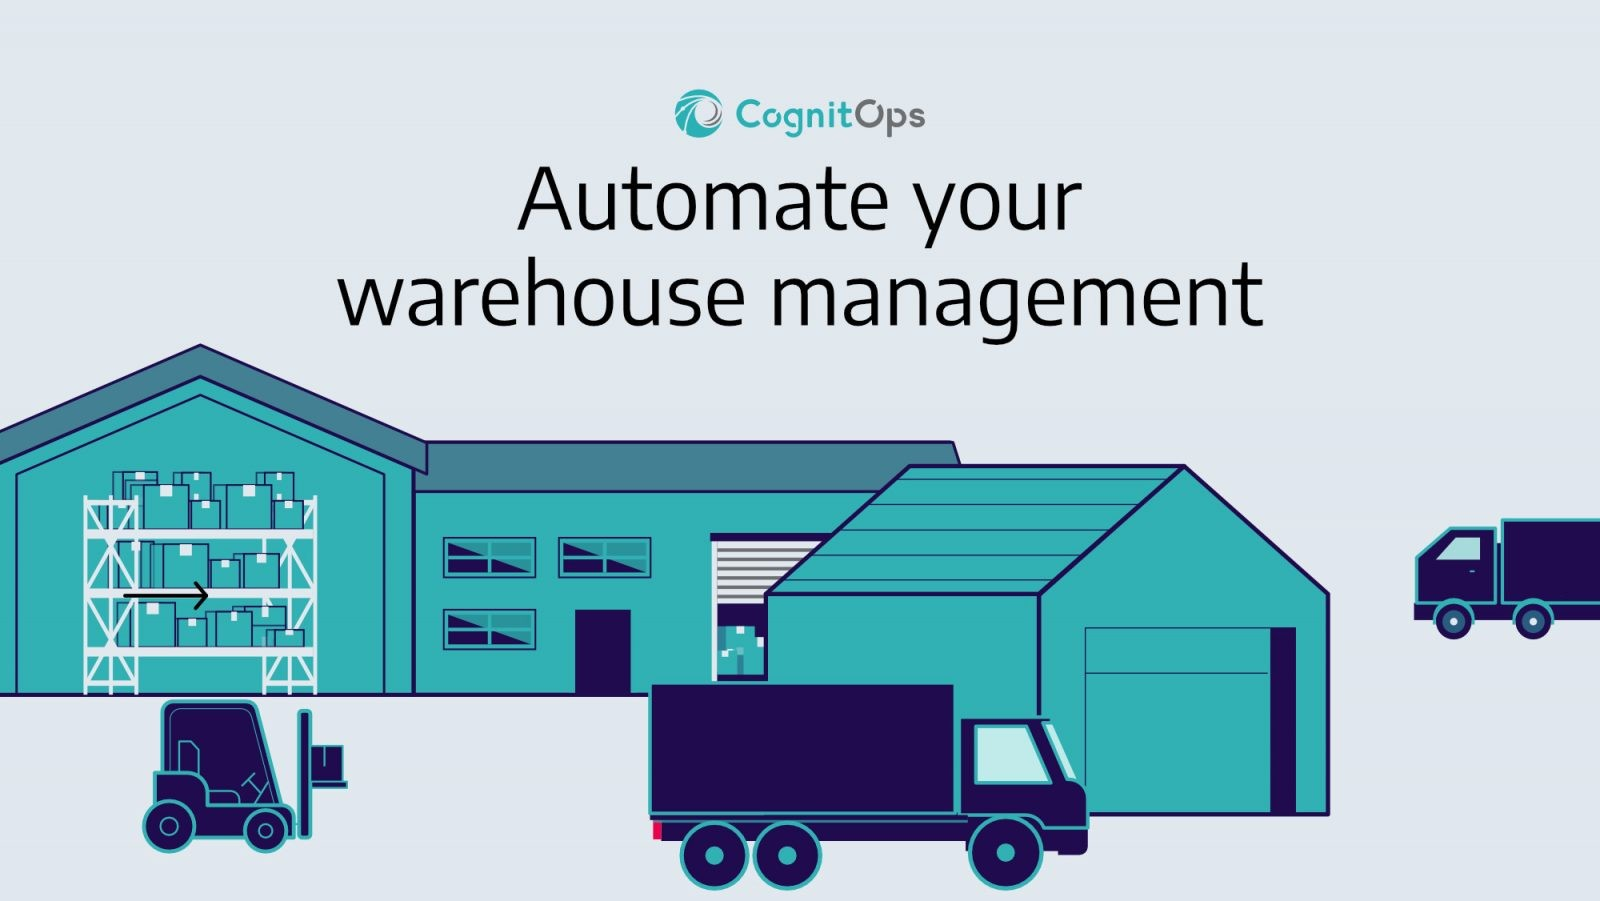 CognitOps | Automate your warehouse management